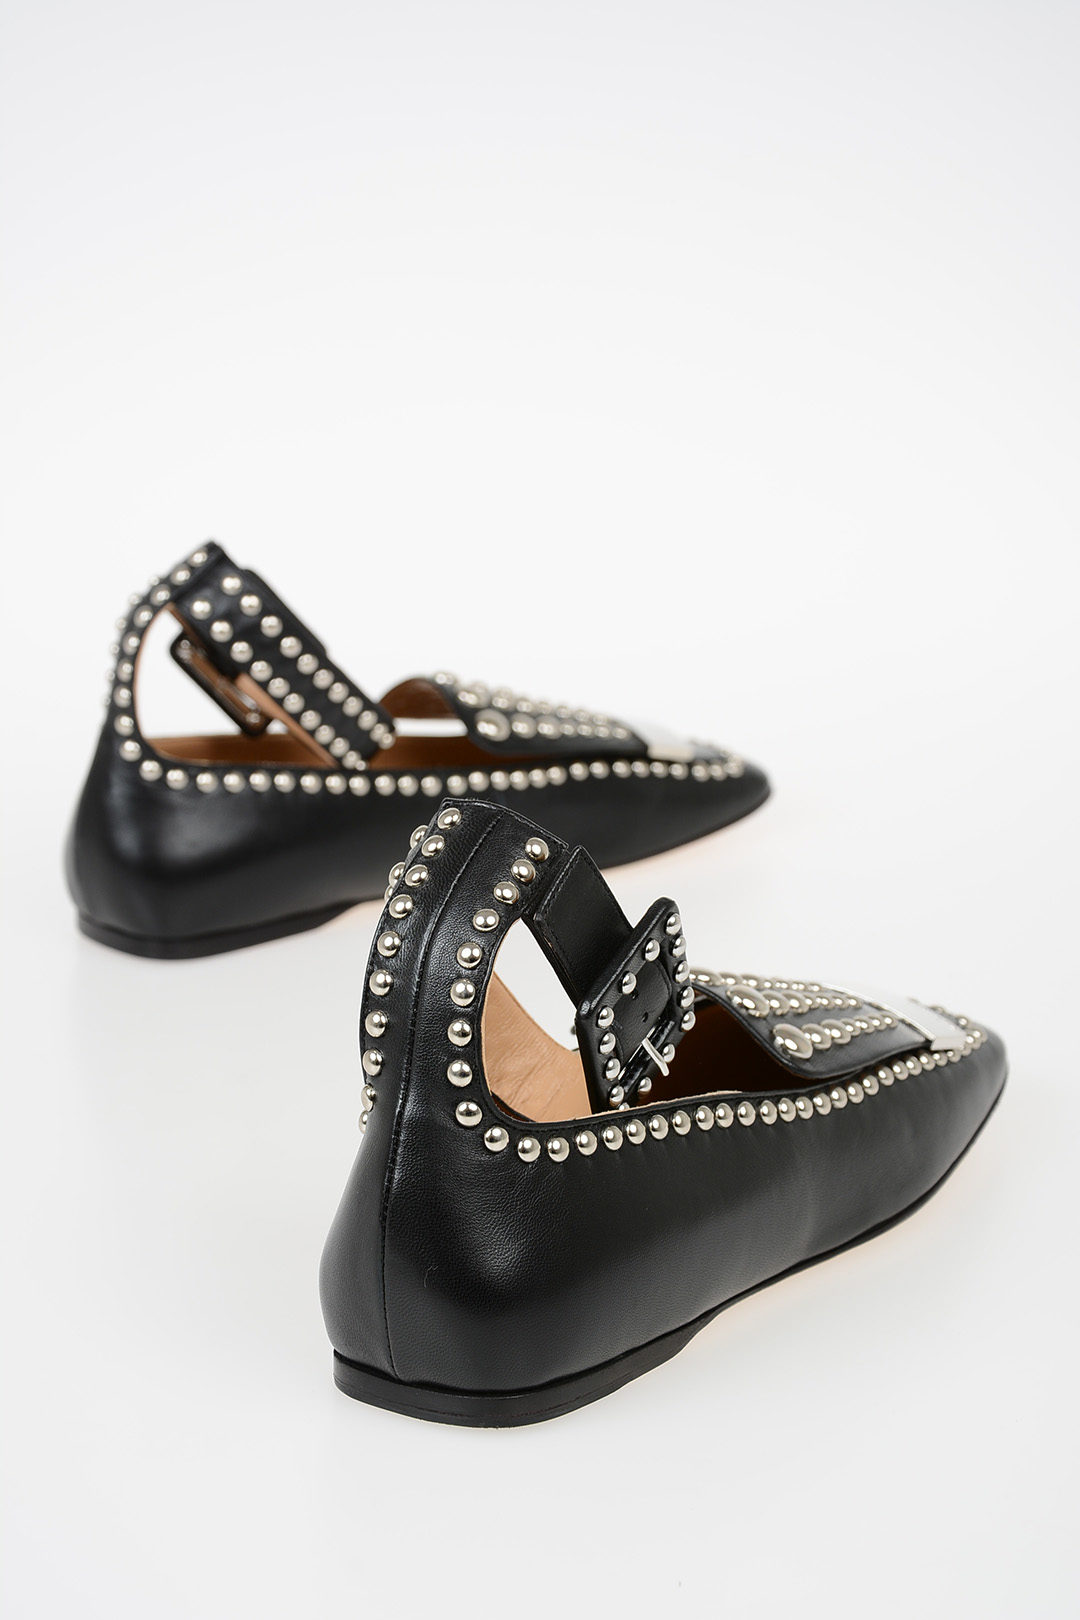 8b8b738e6 Sergio Rossi Loafaers with Studs women - Glamood Outlet